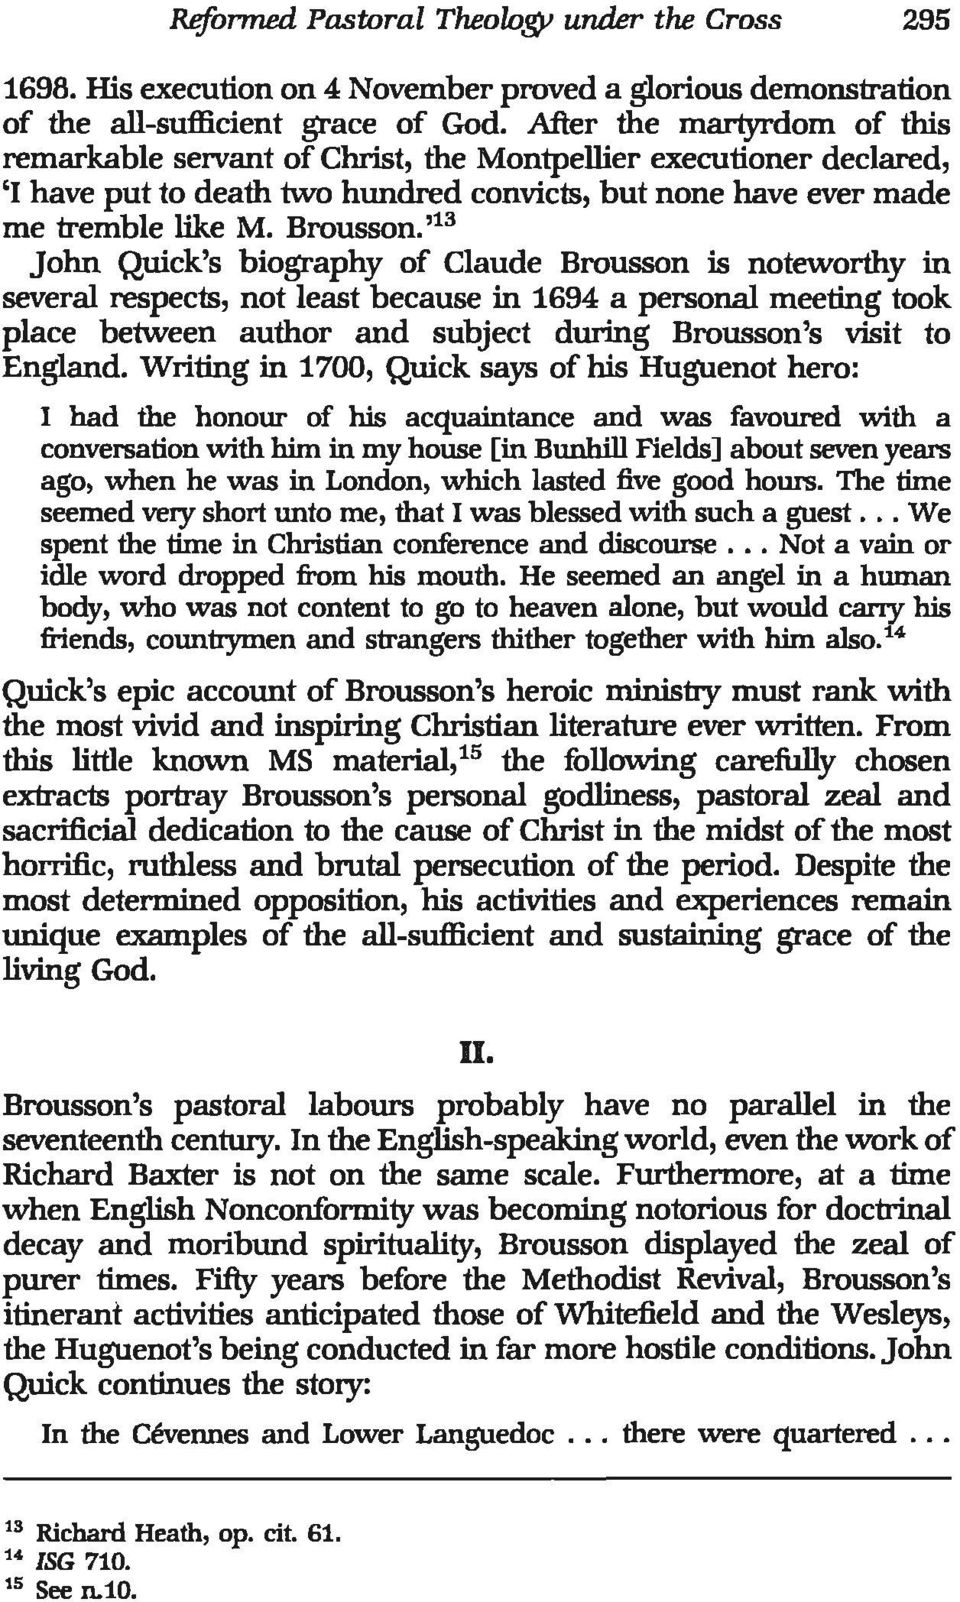 ,13 John Quick's biography of Claude Brousson is noteworthy in several respects, not least because in 1694 a personal meeting took place between author and subject during Brousson's visit to England.